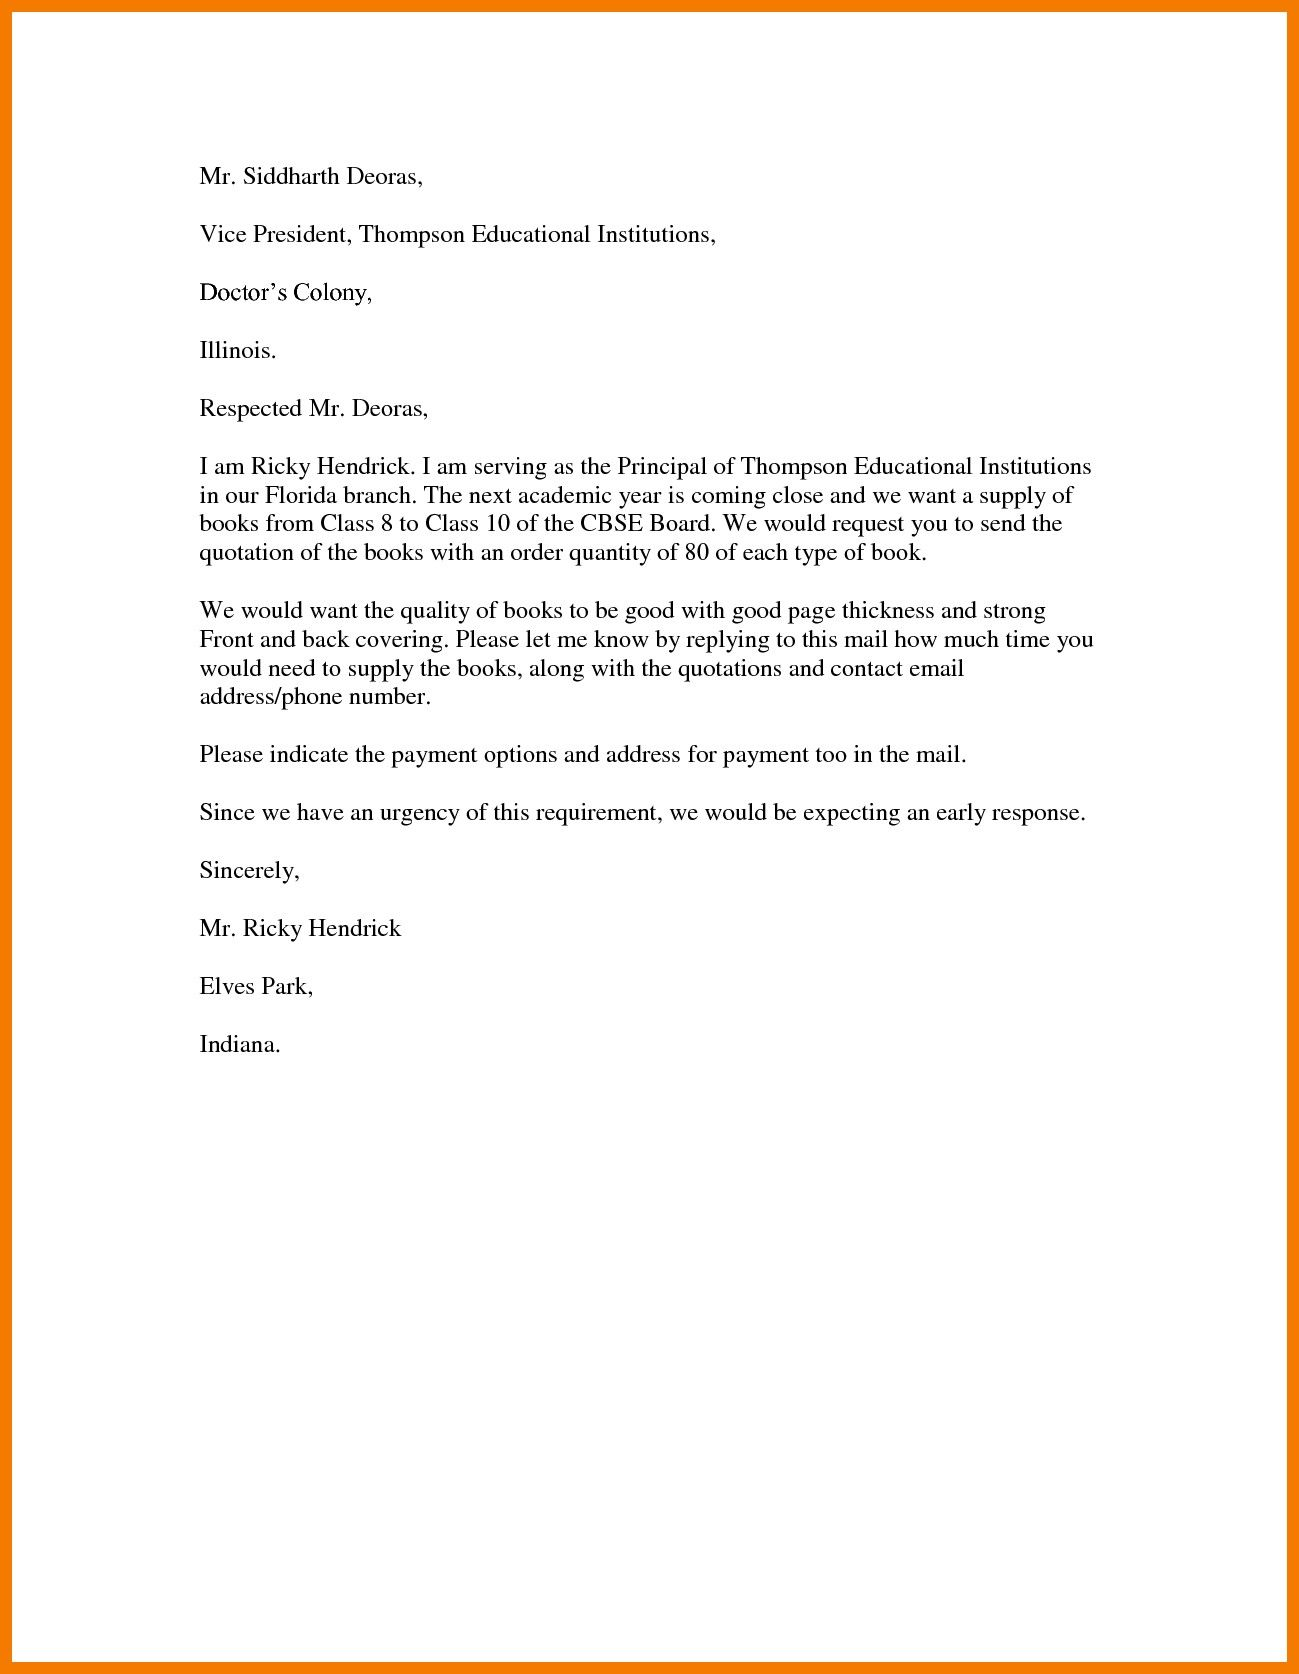 Cover Letter Quotes Templates cover coverlettertemplate